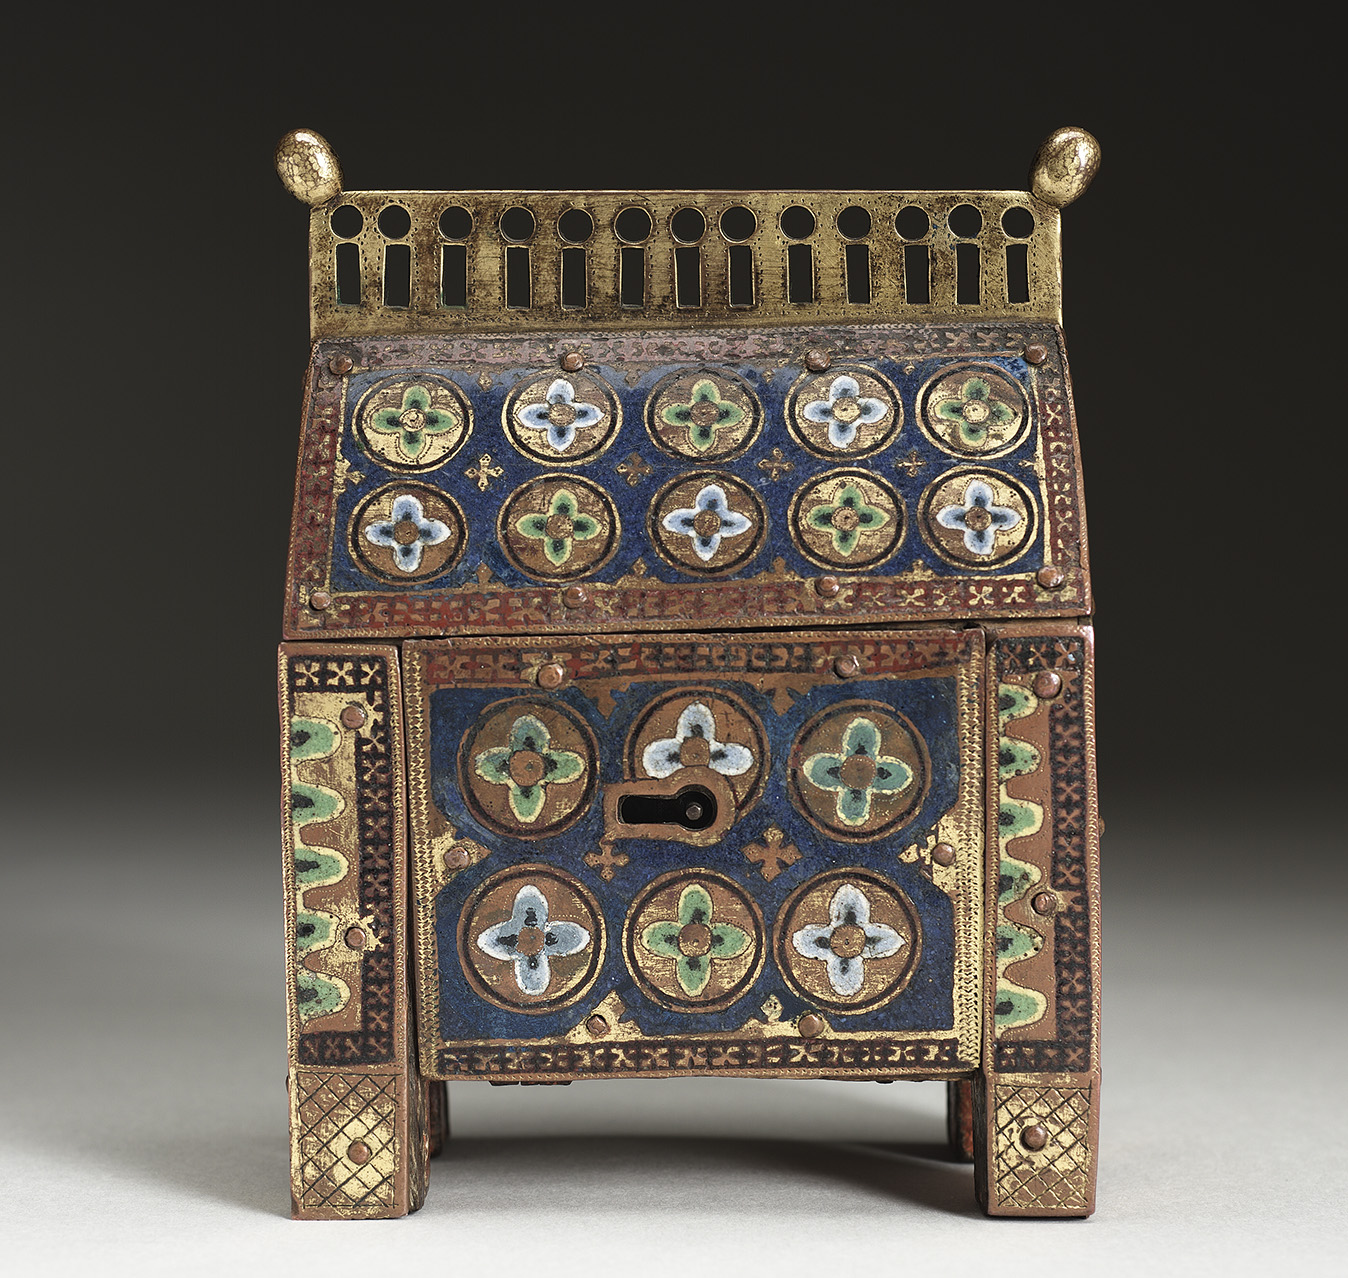 Unknown, Reliquary